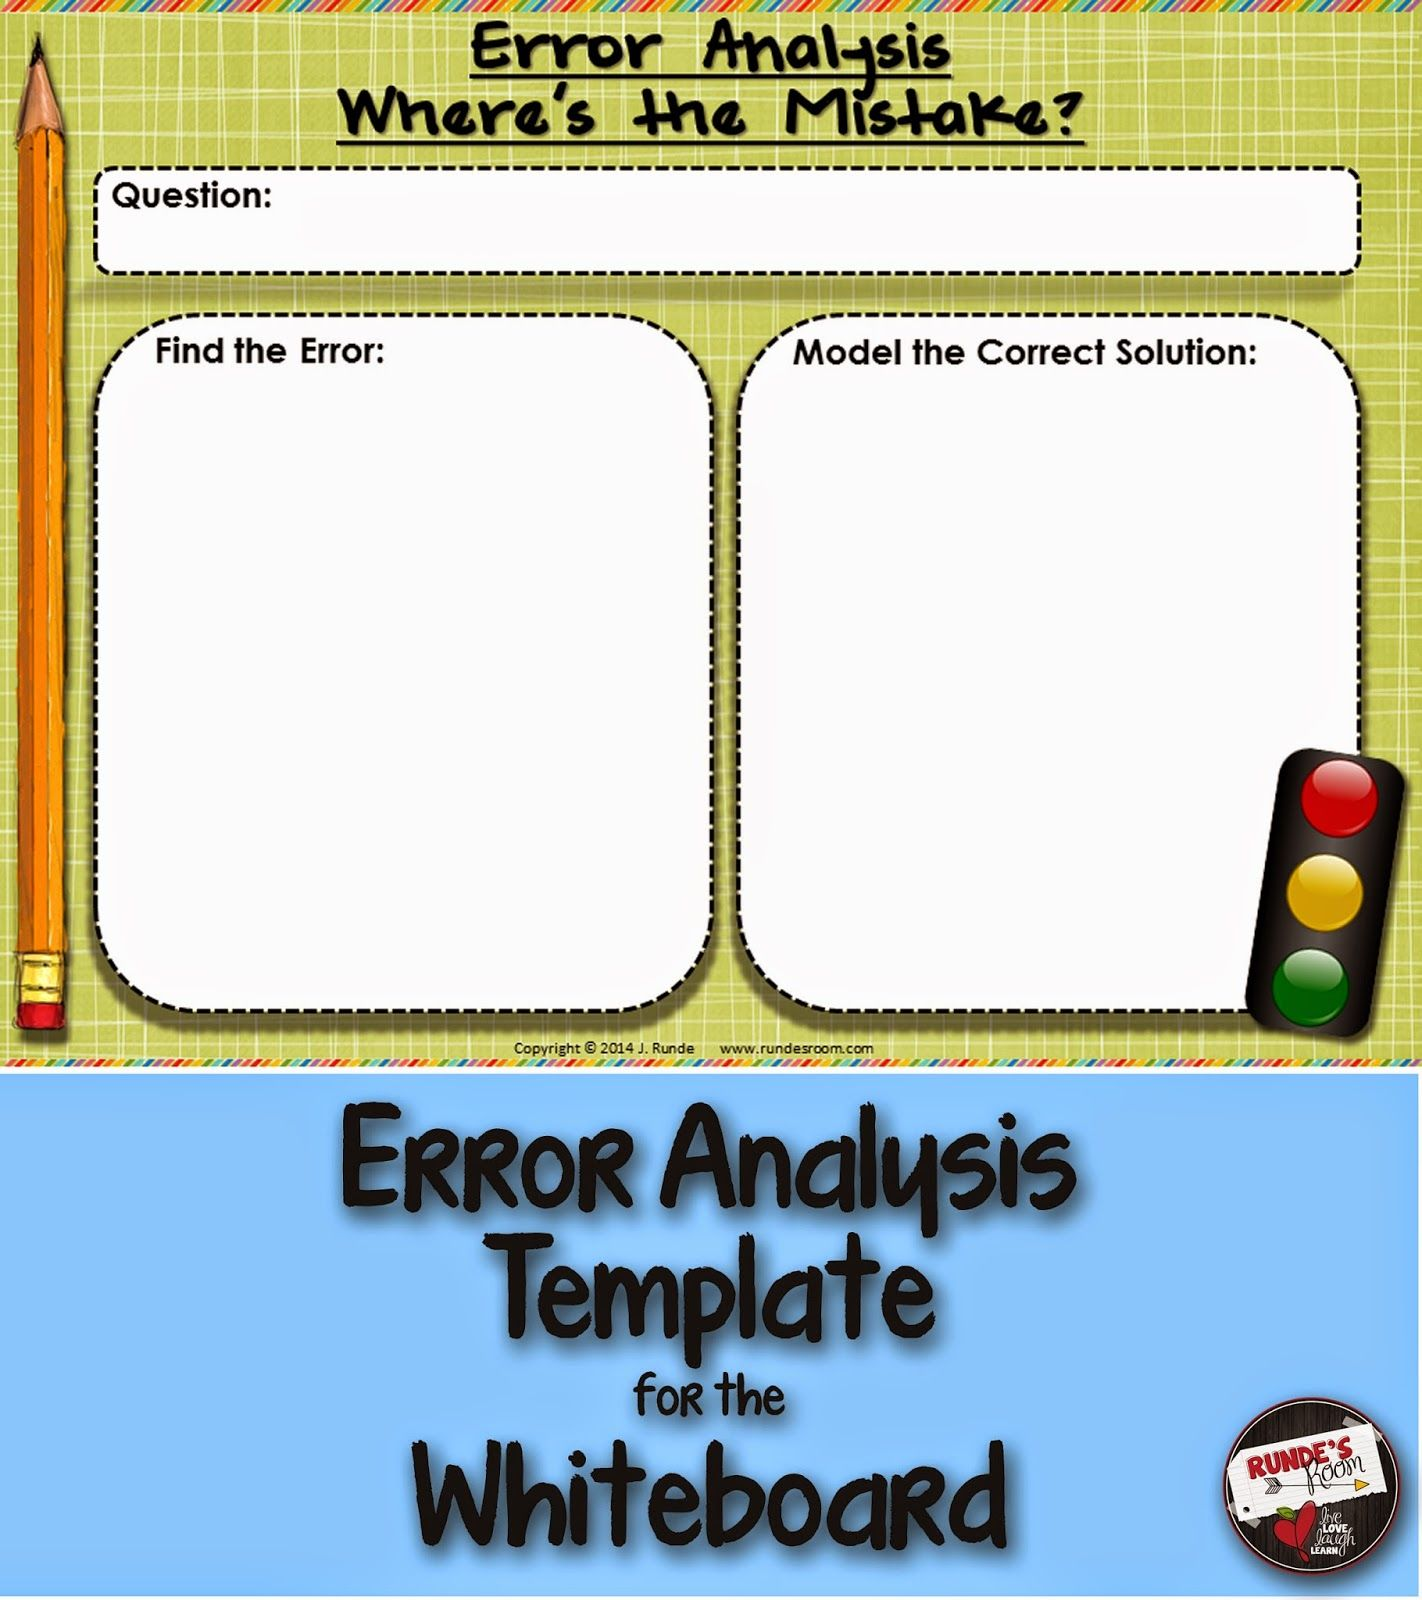 Error analysis template students math and school error analysis template math imath talkteaching alramifo Images